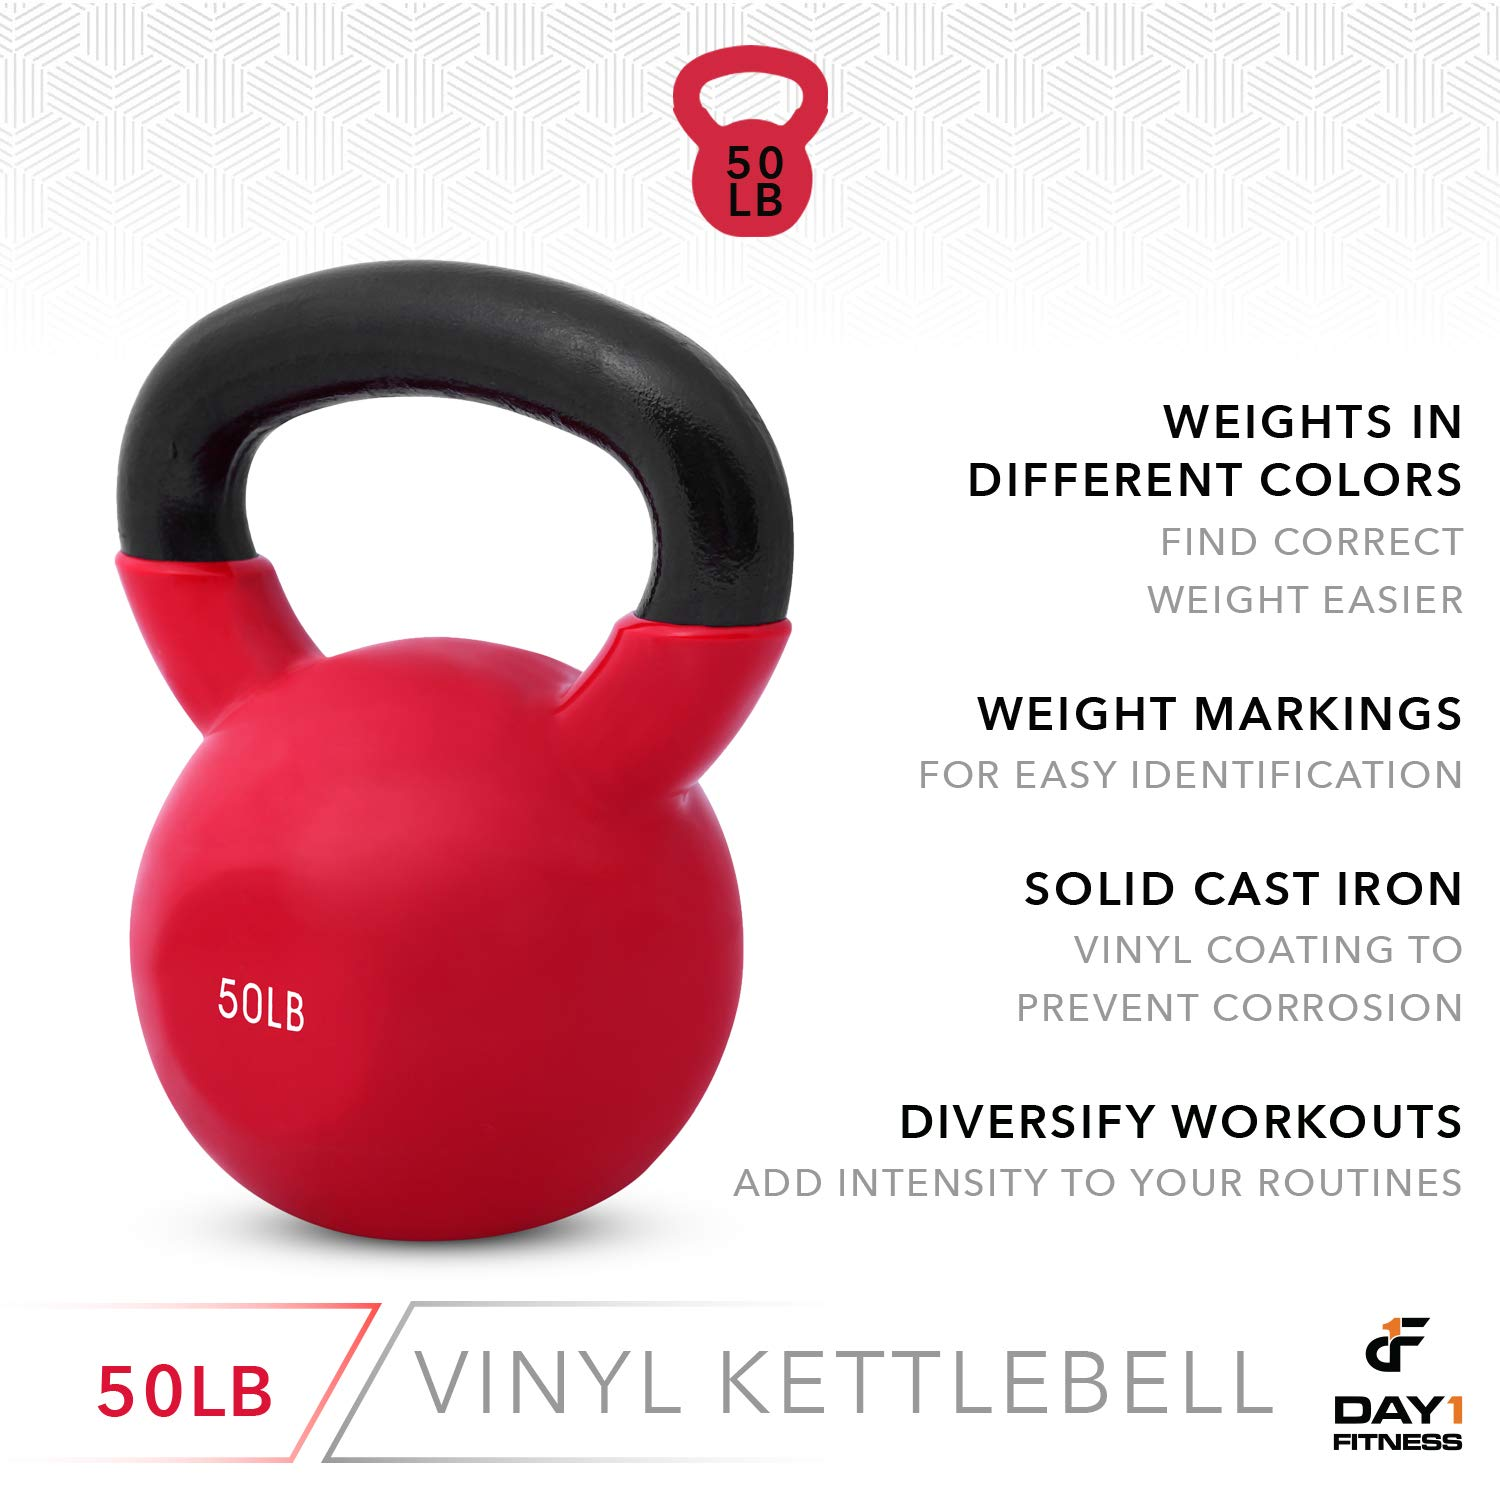 Day 1 Fitness Kettlebell Weights Vinyl Coated Iron 50 Pounds - Coated for Floor and Equipment Protection, Noise Reduction - Free Weights for Ballistic, Core, Weight Training by Day 1 Fitness (Image #5)